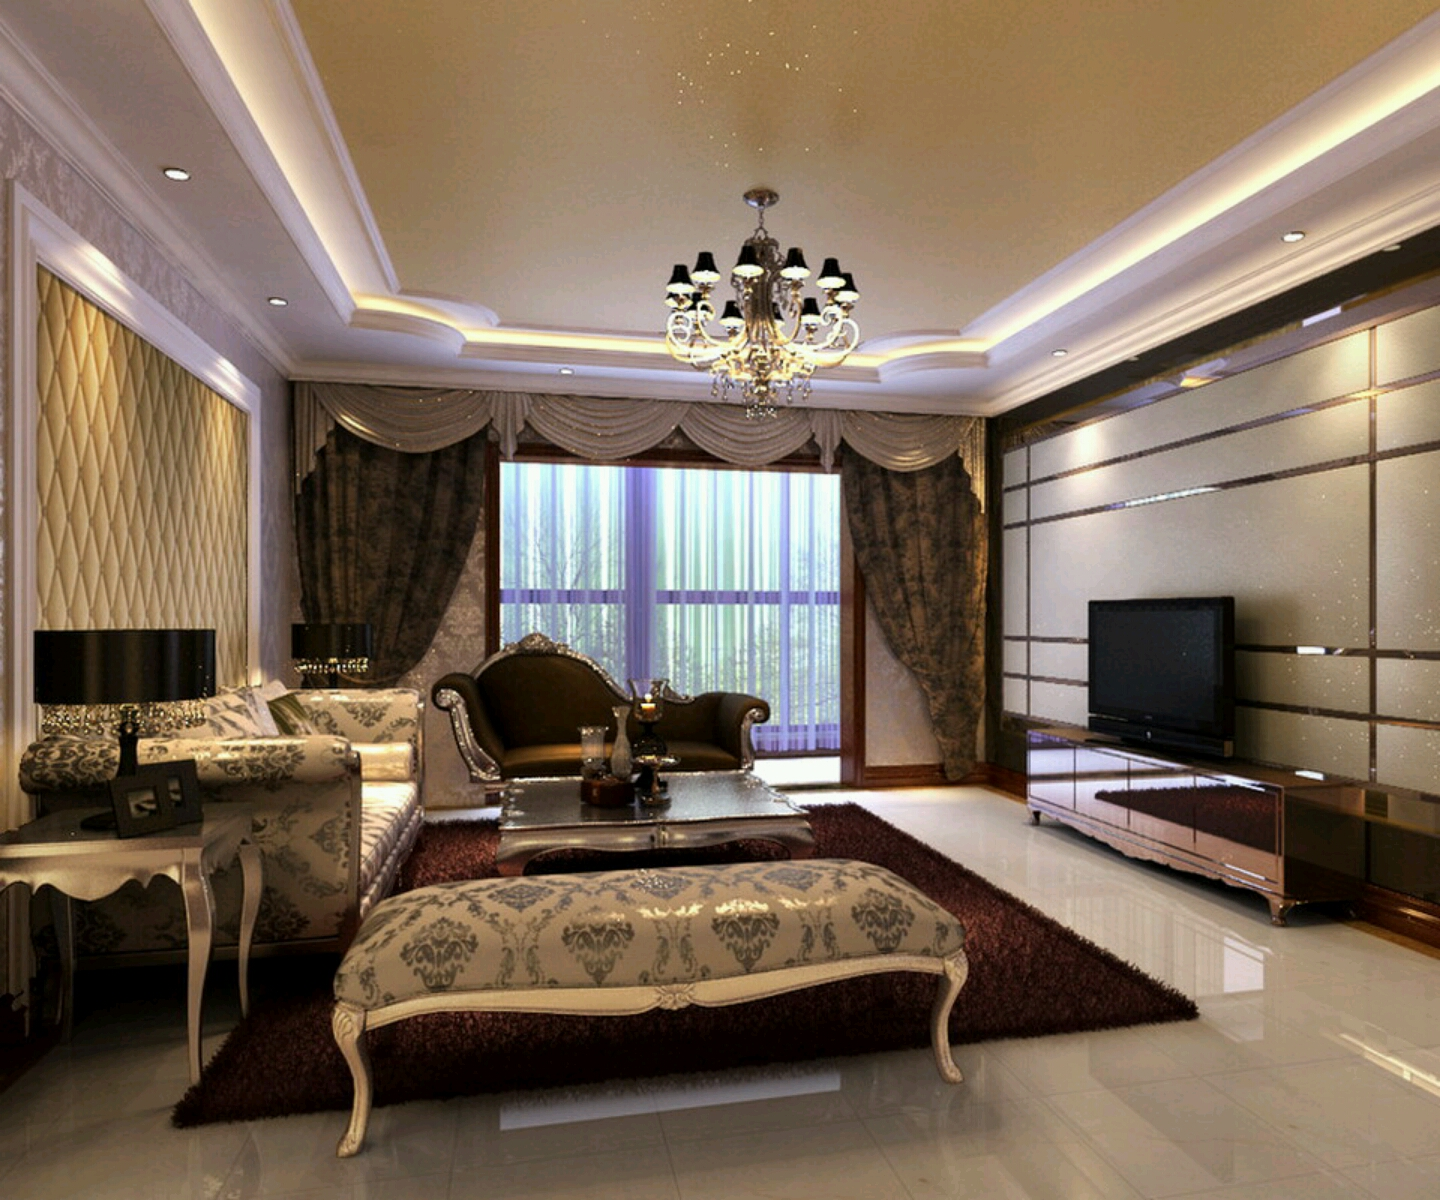 Interior decorating ideas living rooms dream house for House decor ideas for the living room